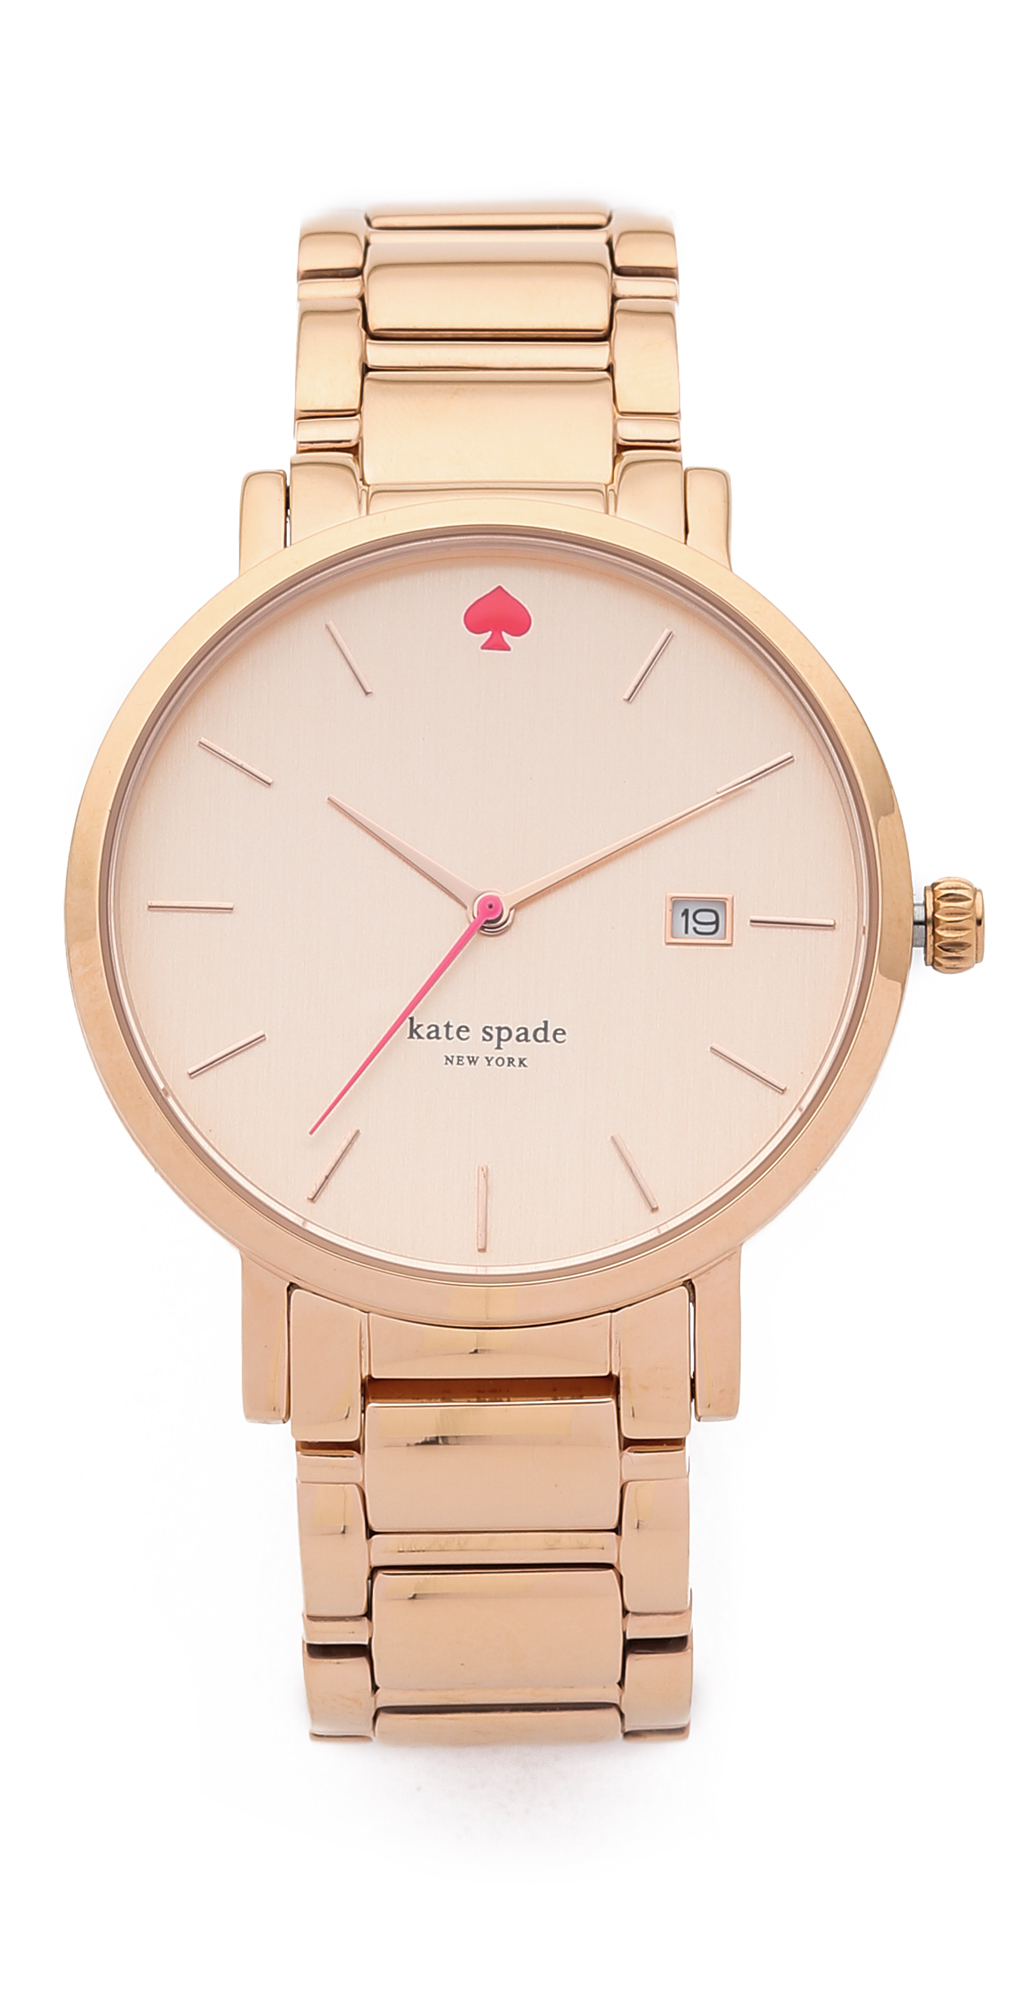 Gramercy Grand Watch Kate Spade New York